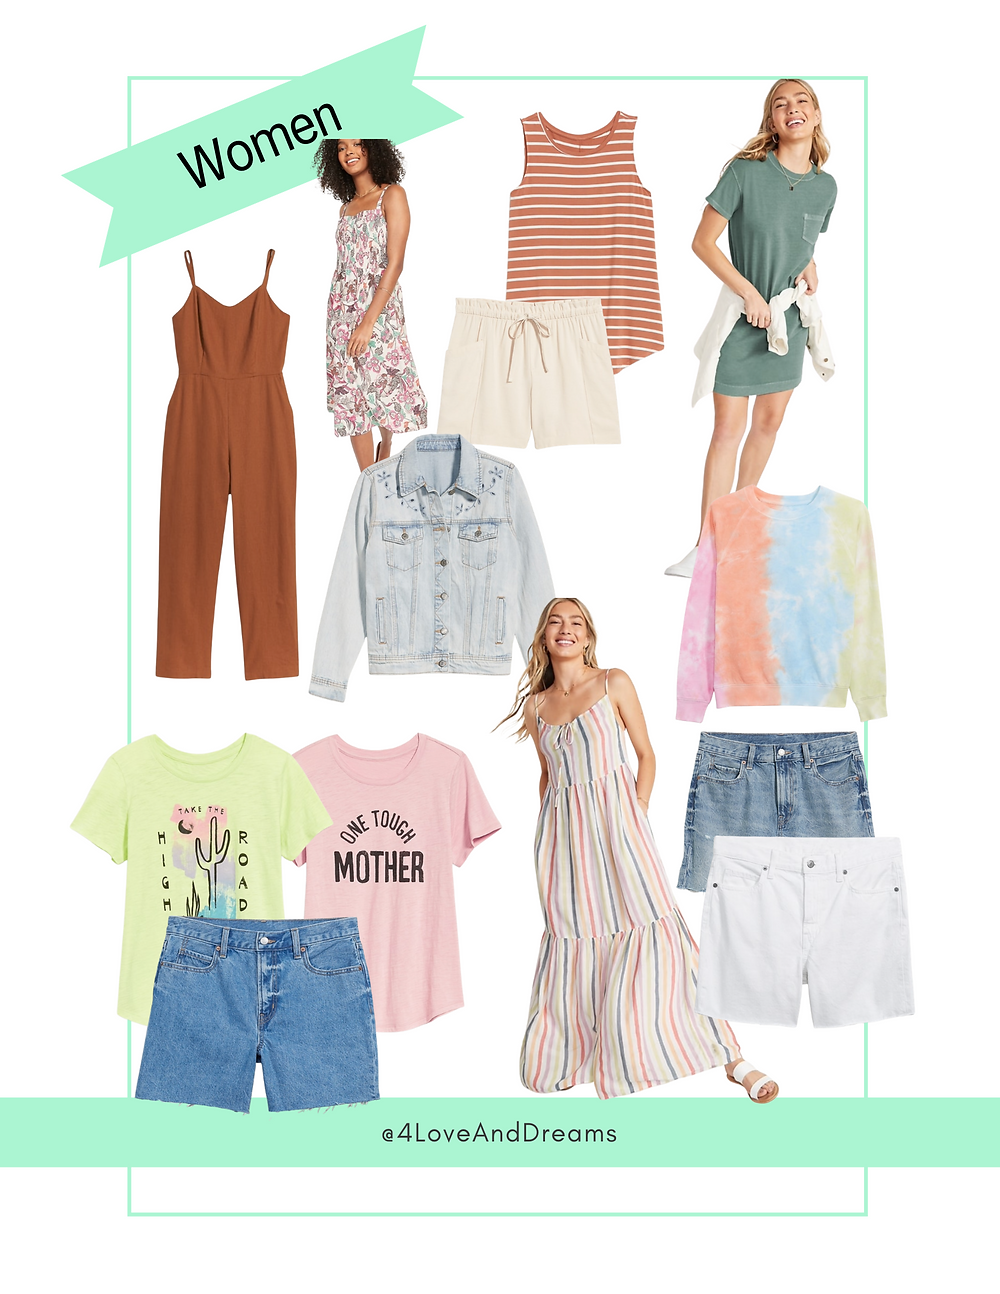 summer 2021.  summer dresses.  vacation looks.  vacation outfits.  Hot girl summer.  summer must haves.  best shorts for moms